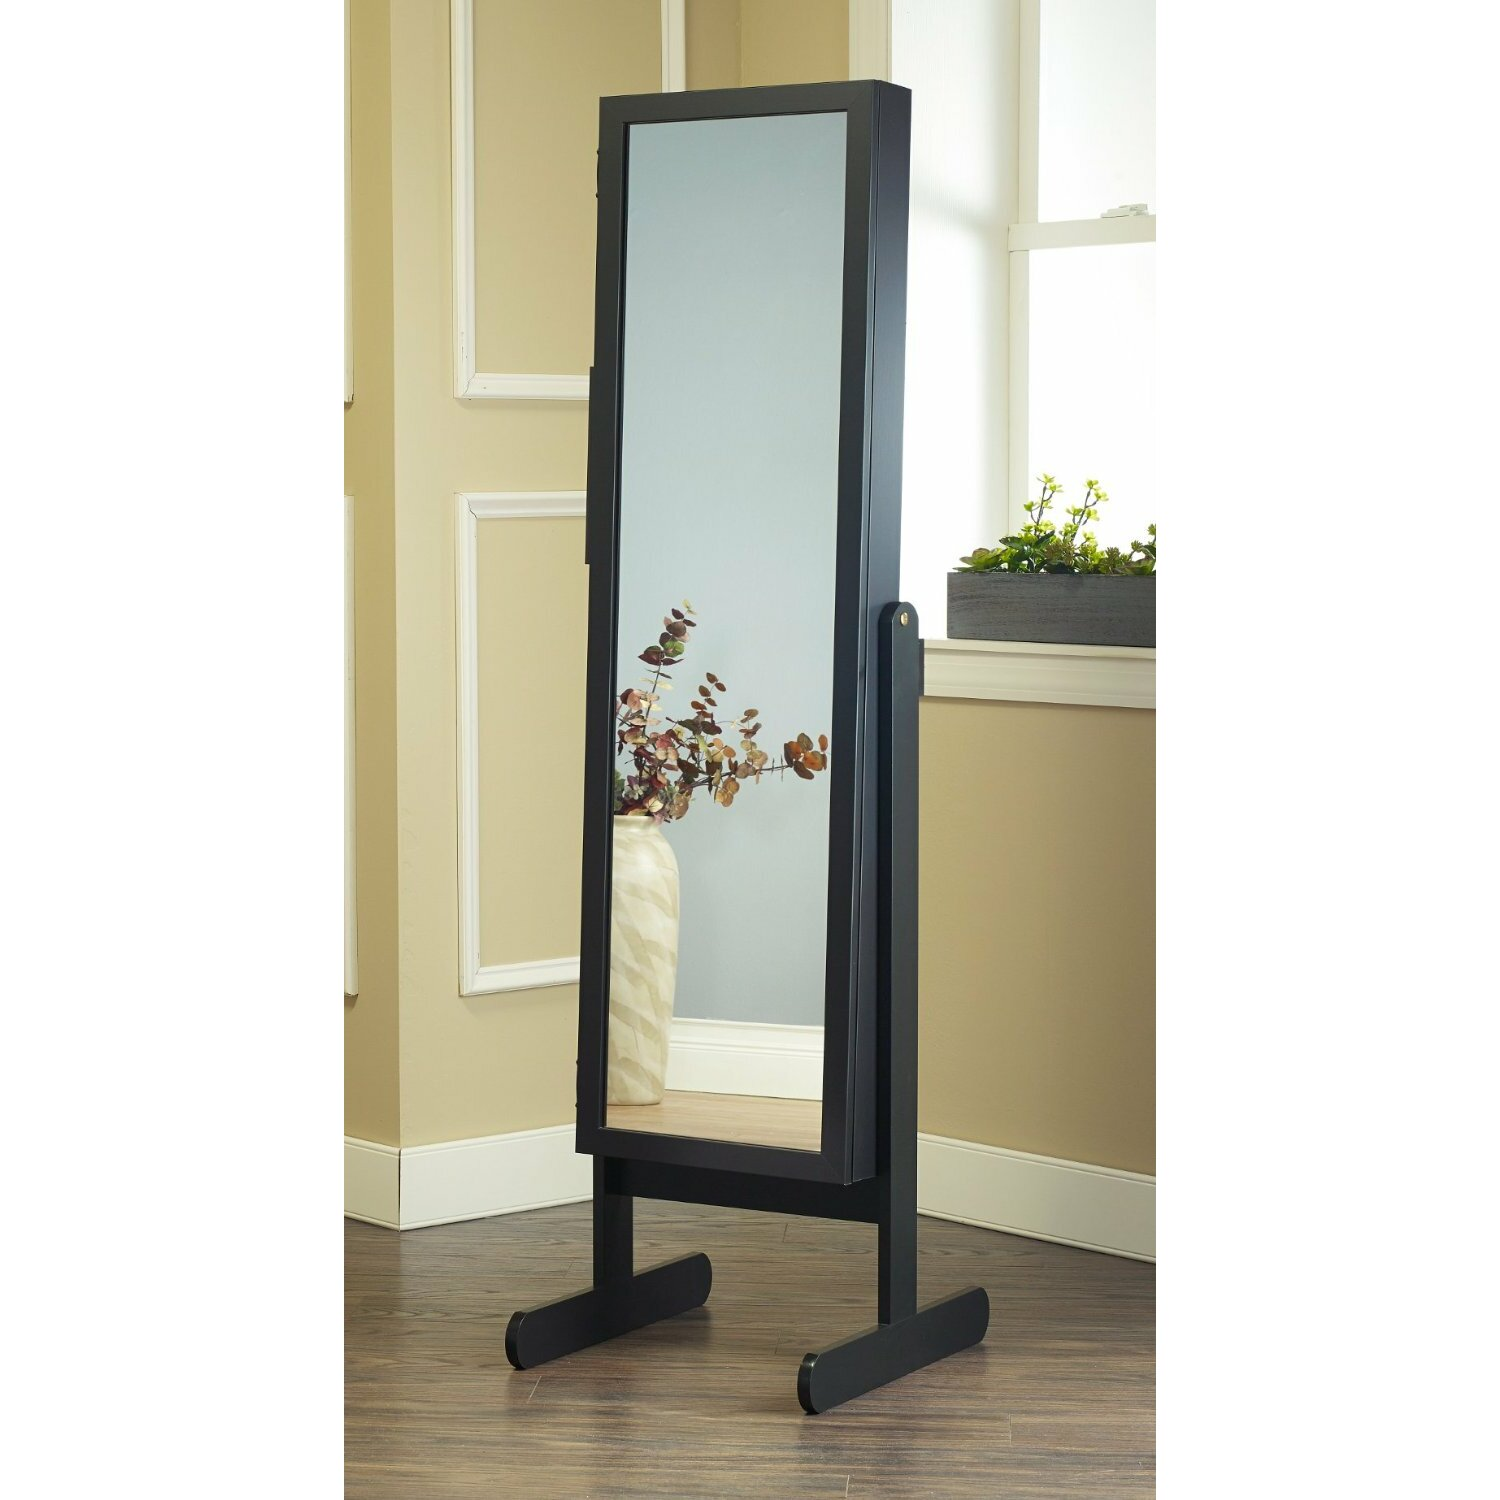 Standing Jewelry Armoire ~ Mirrotek free standing jewelry armoire with mirror